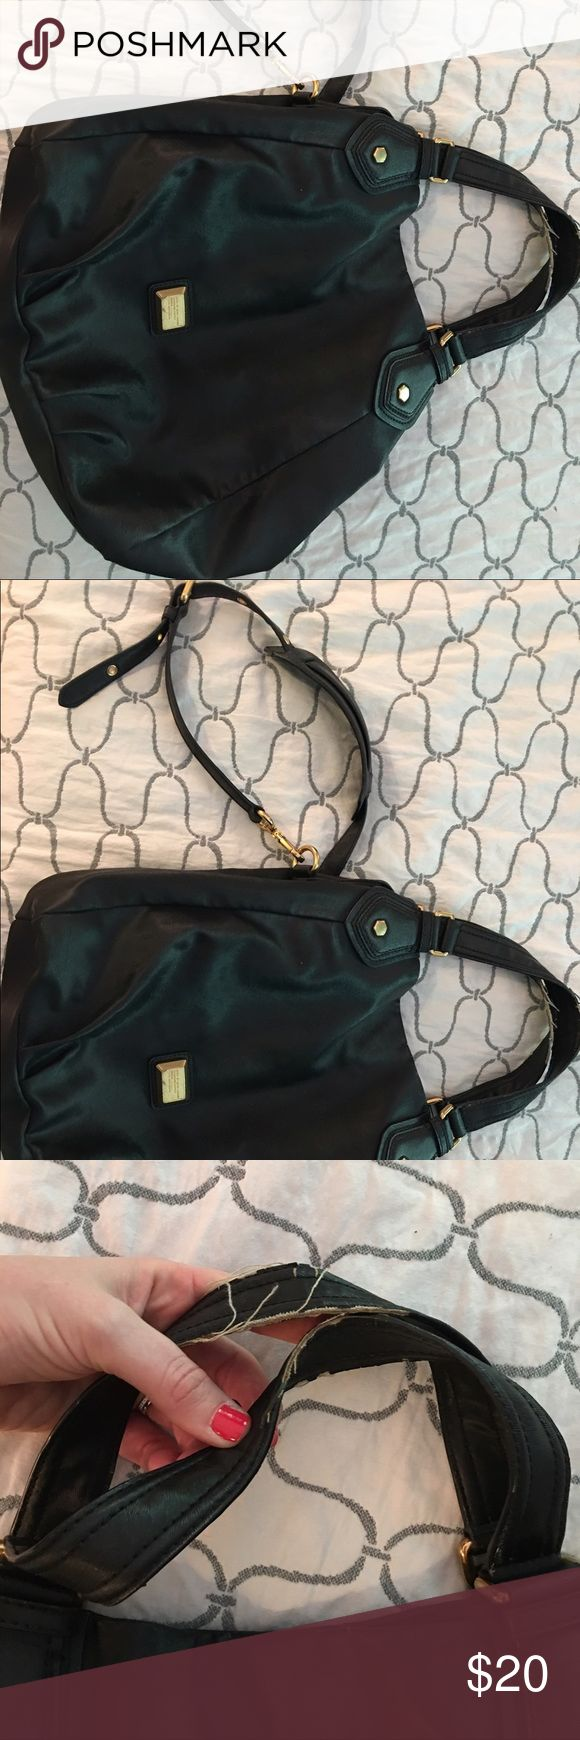 Used Marc by Marc jacobs handbag! Marc by Marc Jacobs handbag for sale! $20 Definitely has some wear on the shoulder strap and the Marc by Marc emblem on the front but other than that, simply gorgeous bag!!! Marc by Marc Jacobs Bags Shoulder Bags